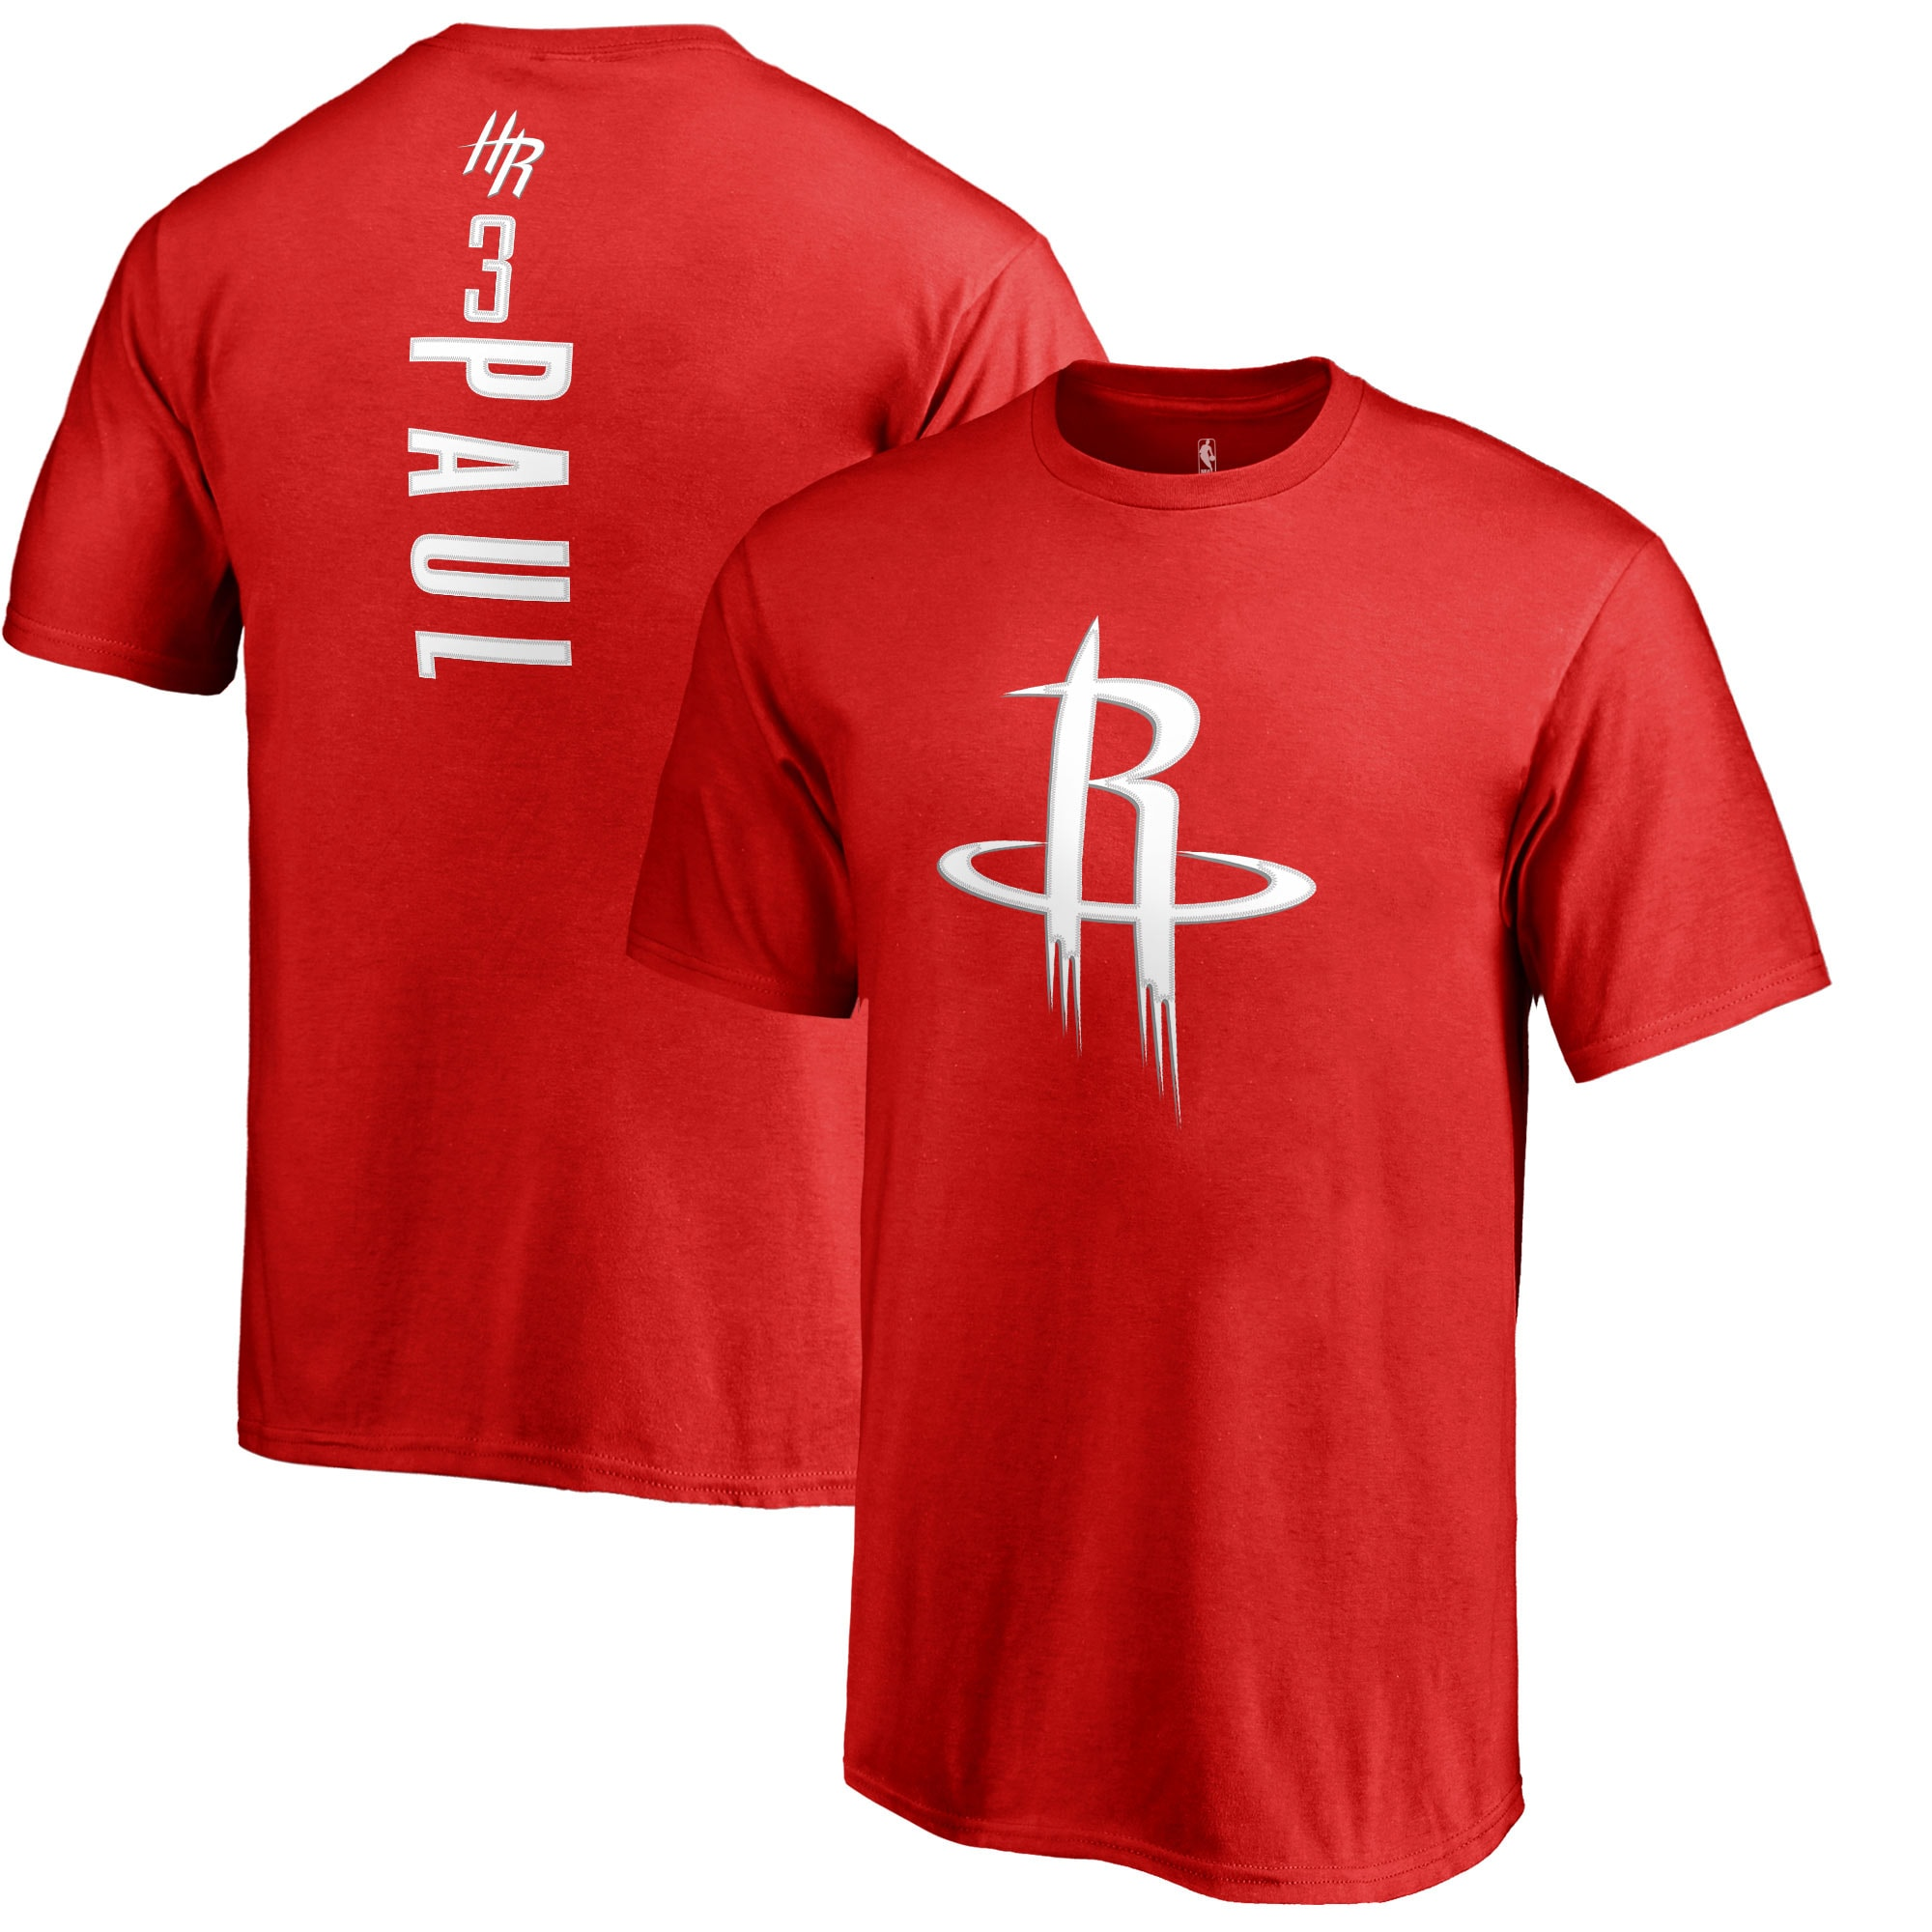 Chris Paul Houston Rockets Fanatics Branded Youth Backer Name & Number T-Shirt - Red